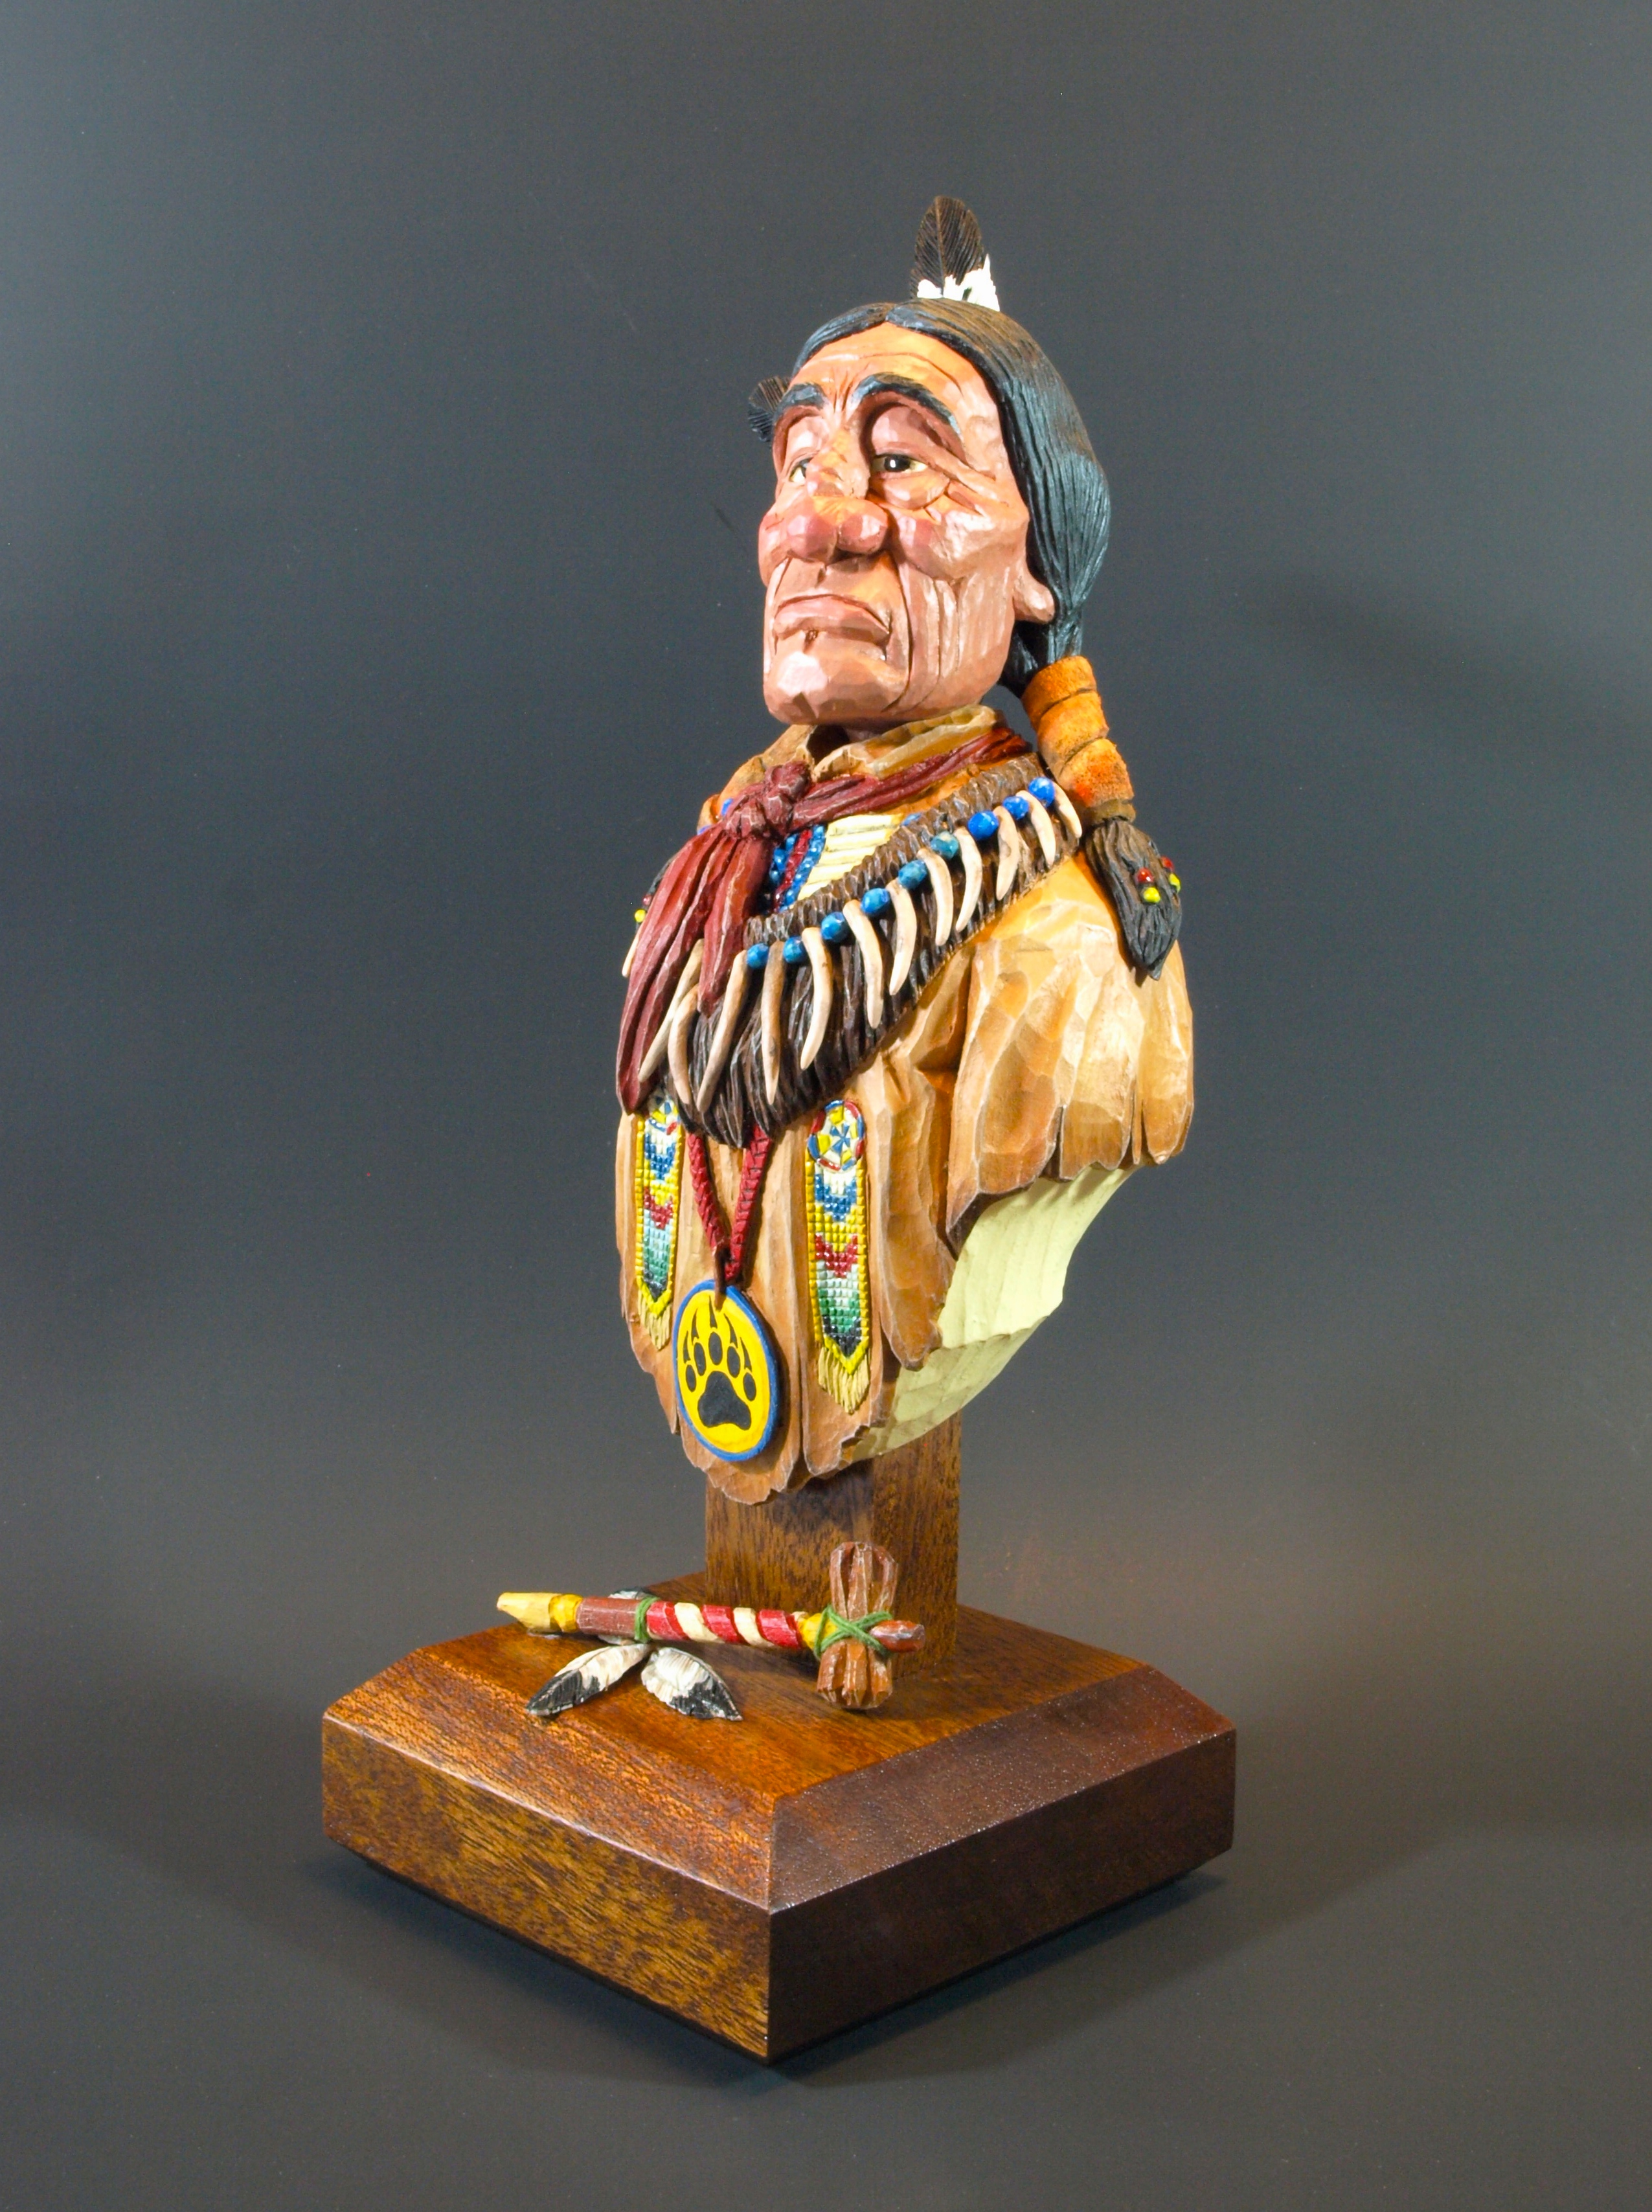 Woodcarving and website news nutmeg woodworking